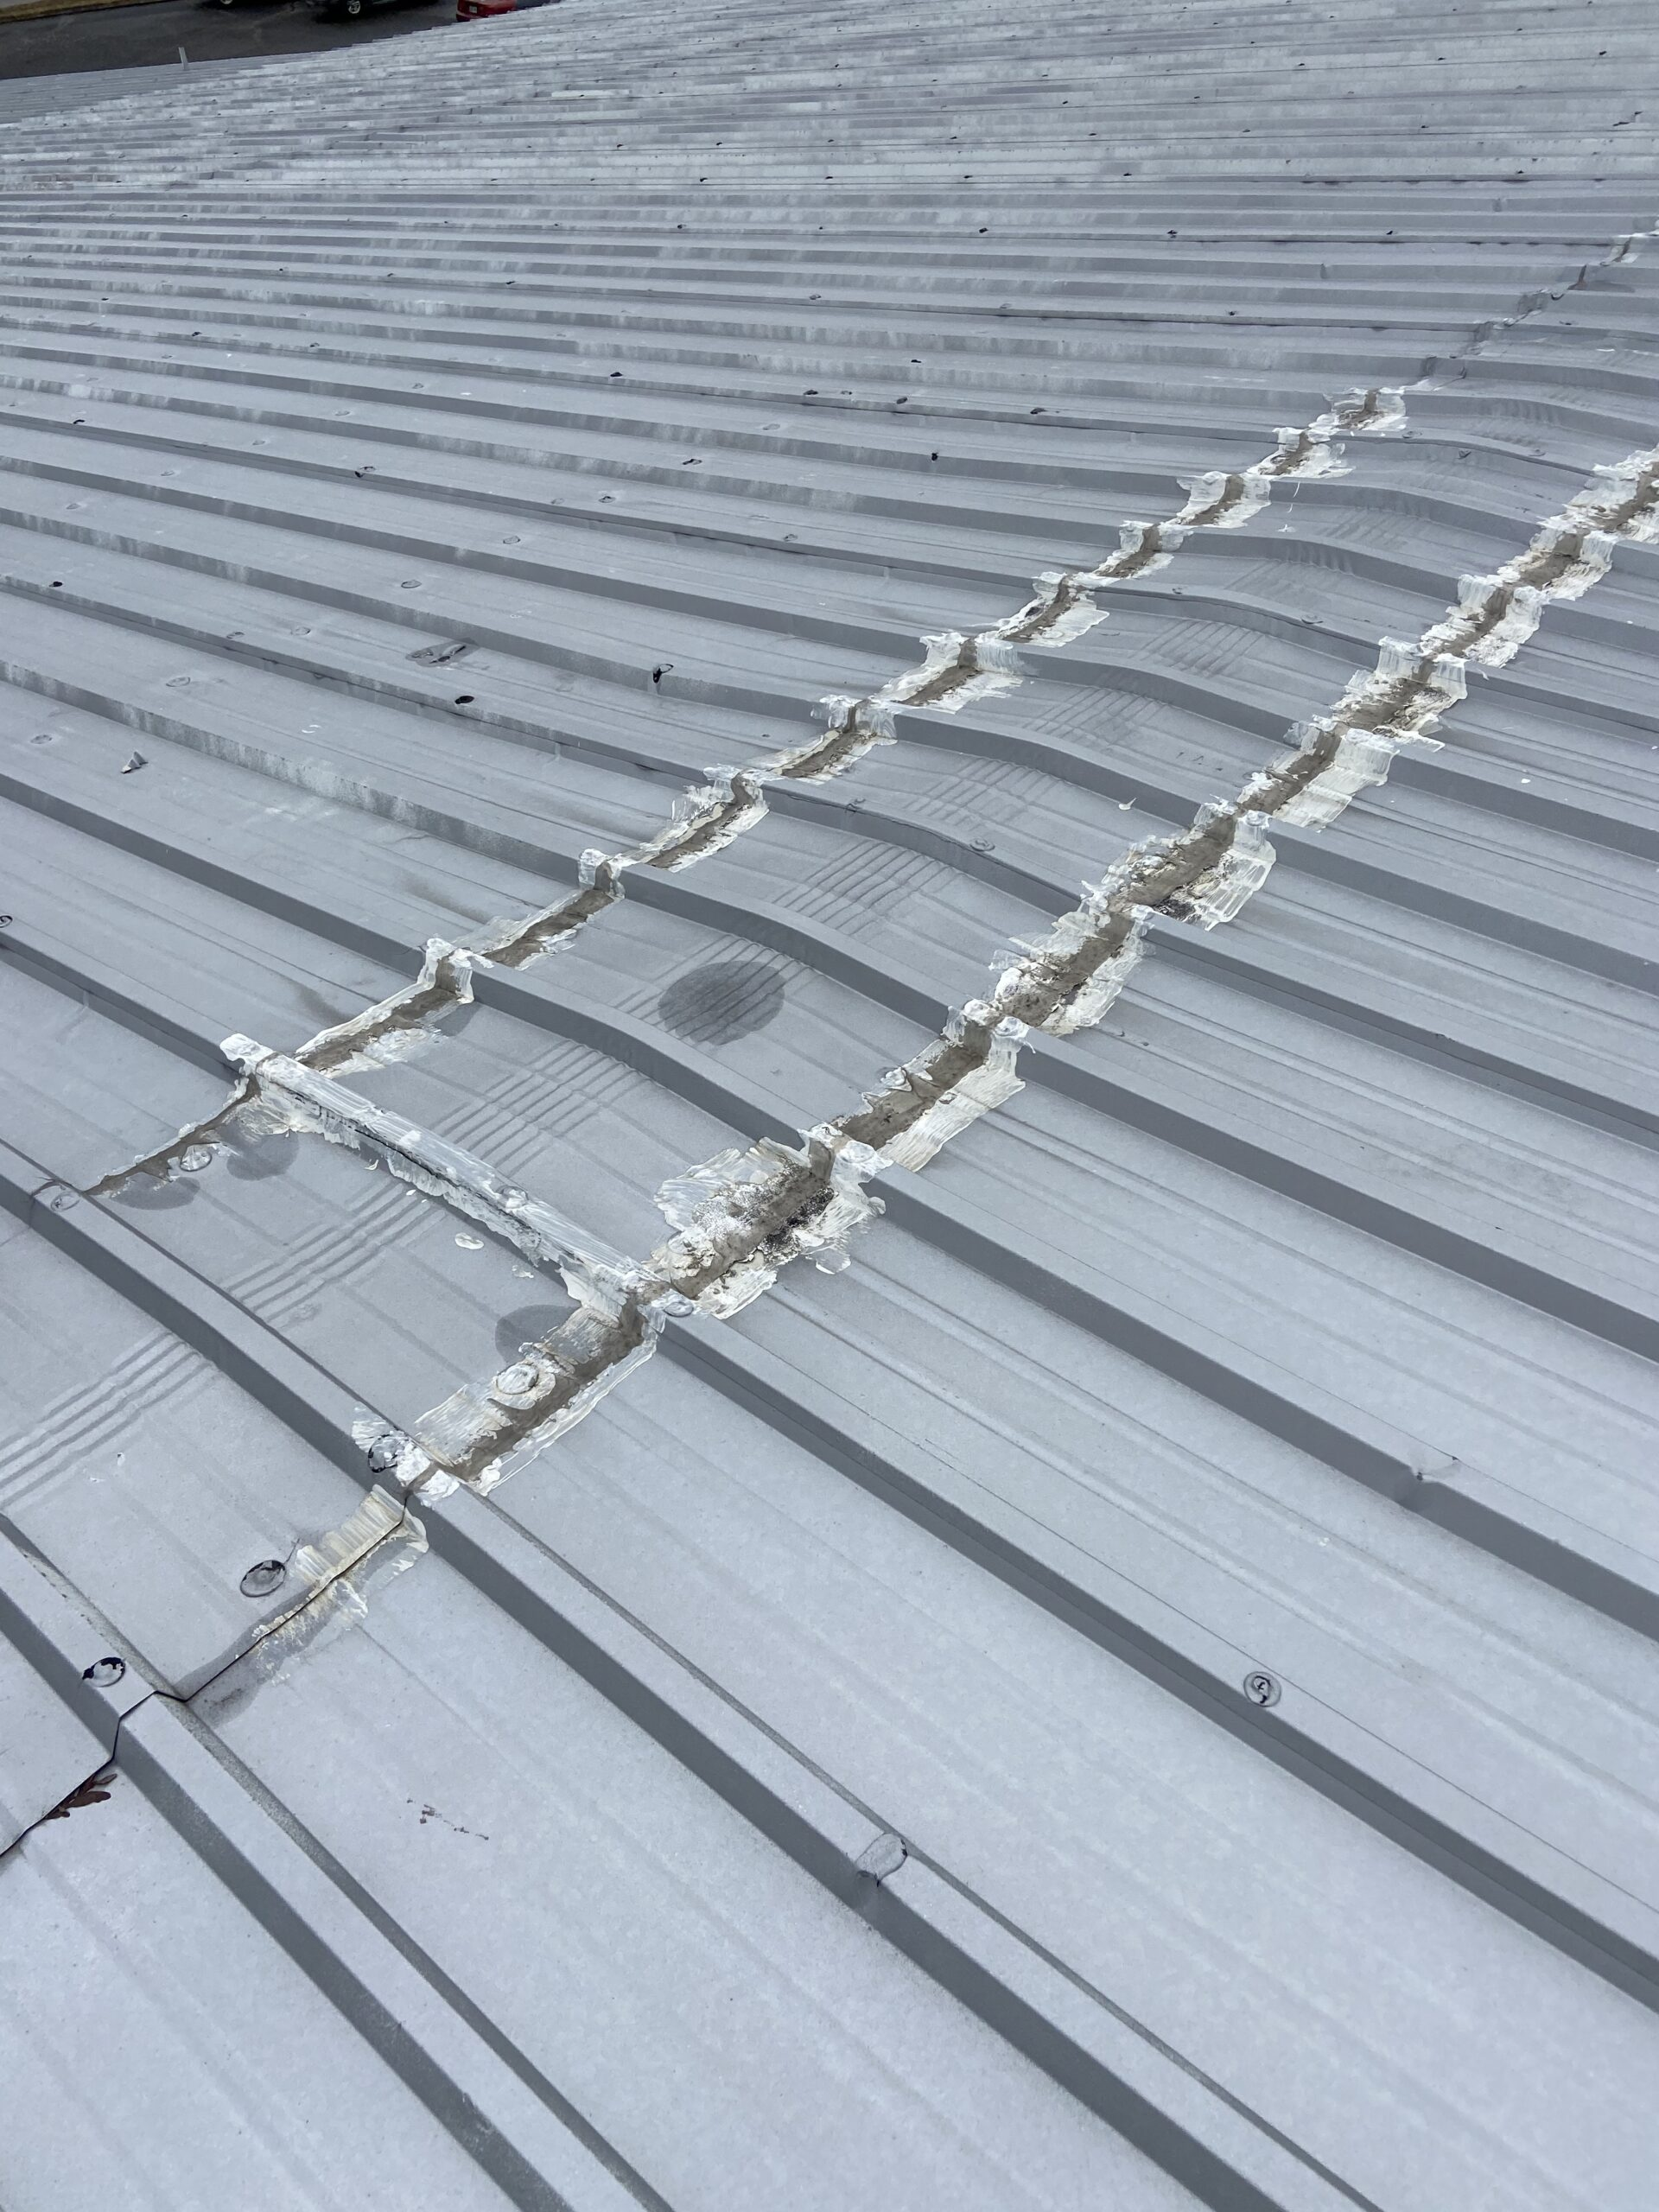 This is the ridge of a metal roof that has leaks